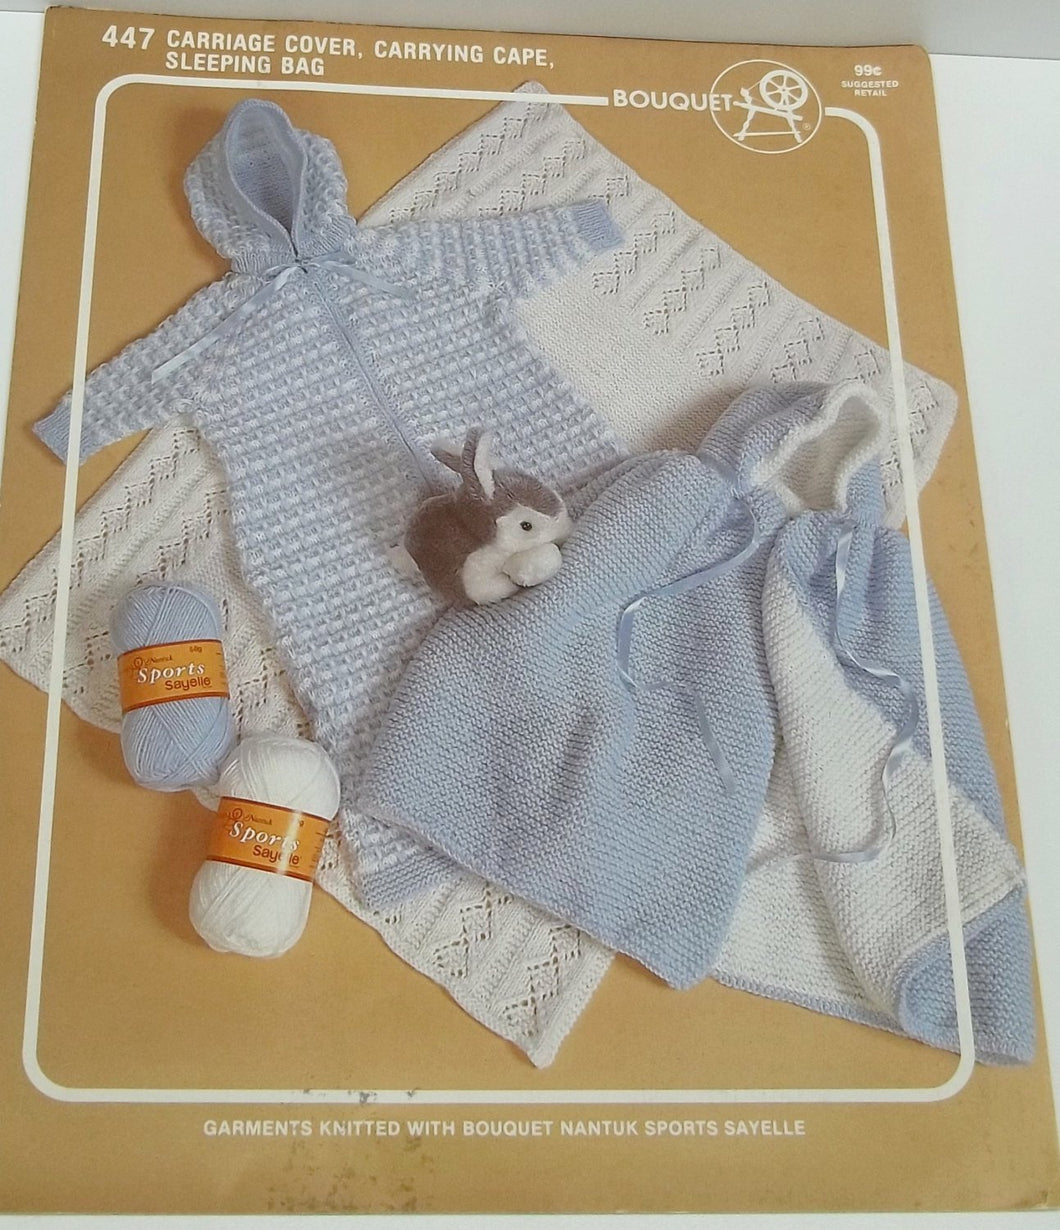 Vintage baby knitting patterns,leaflet Bouquet/447,knitting baby pattern,carriage cover,carrying cape,sleeping bag knitting patterns